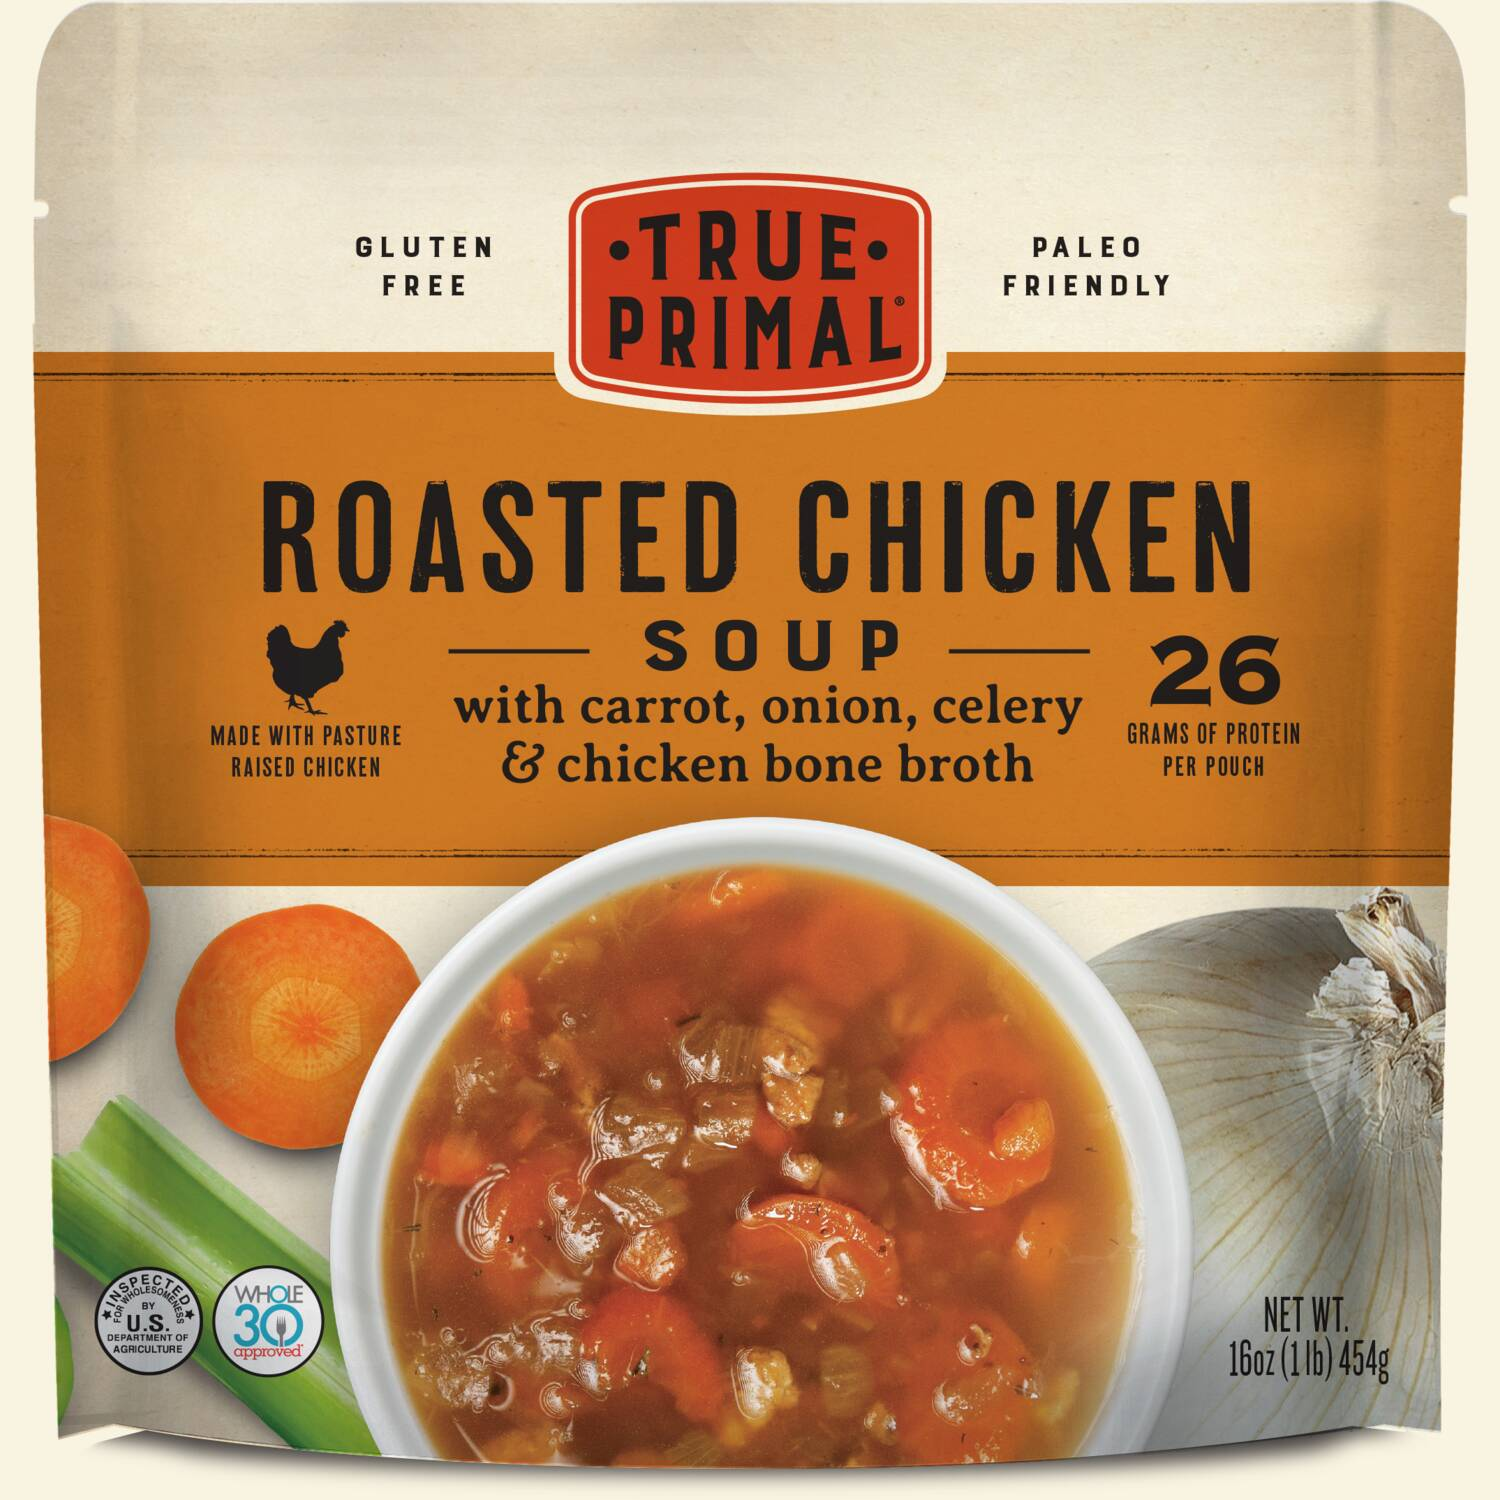 True Primal Roasted Chicken Soup in pouch, front